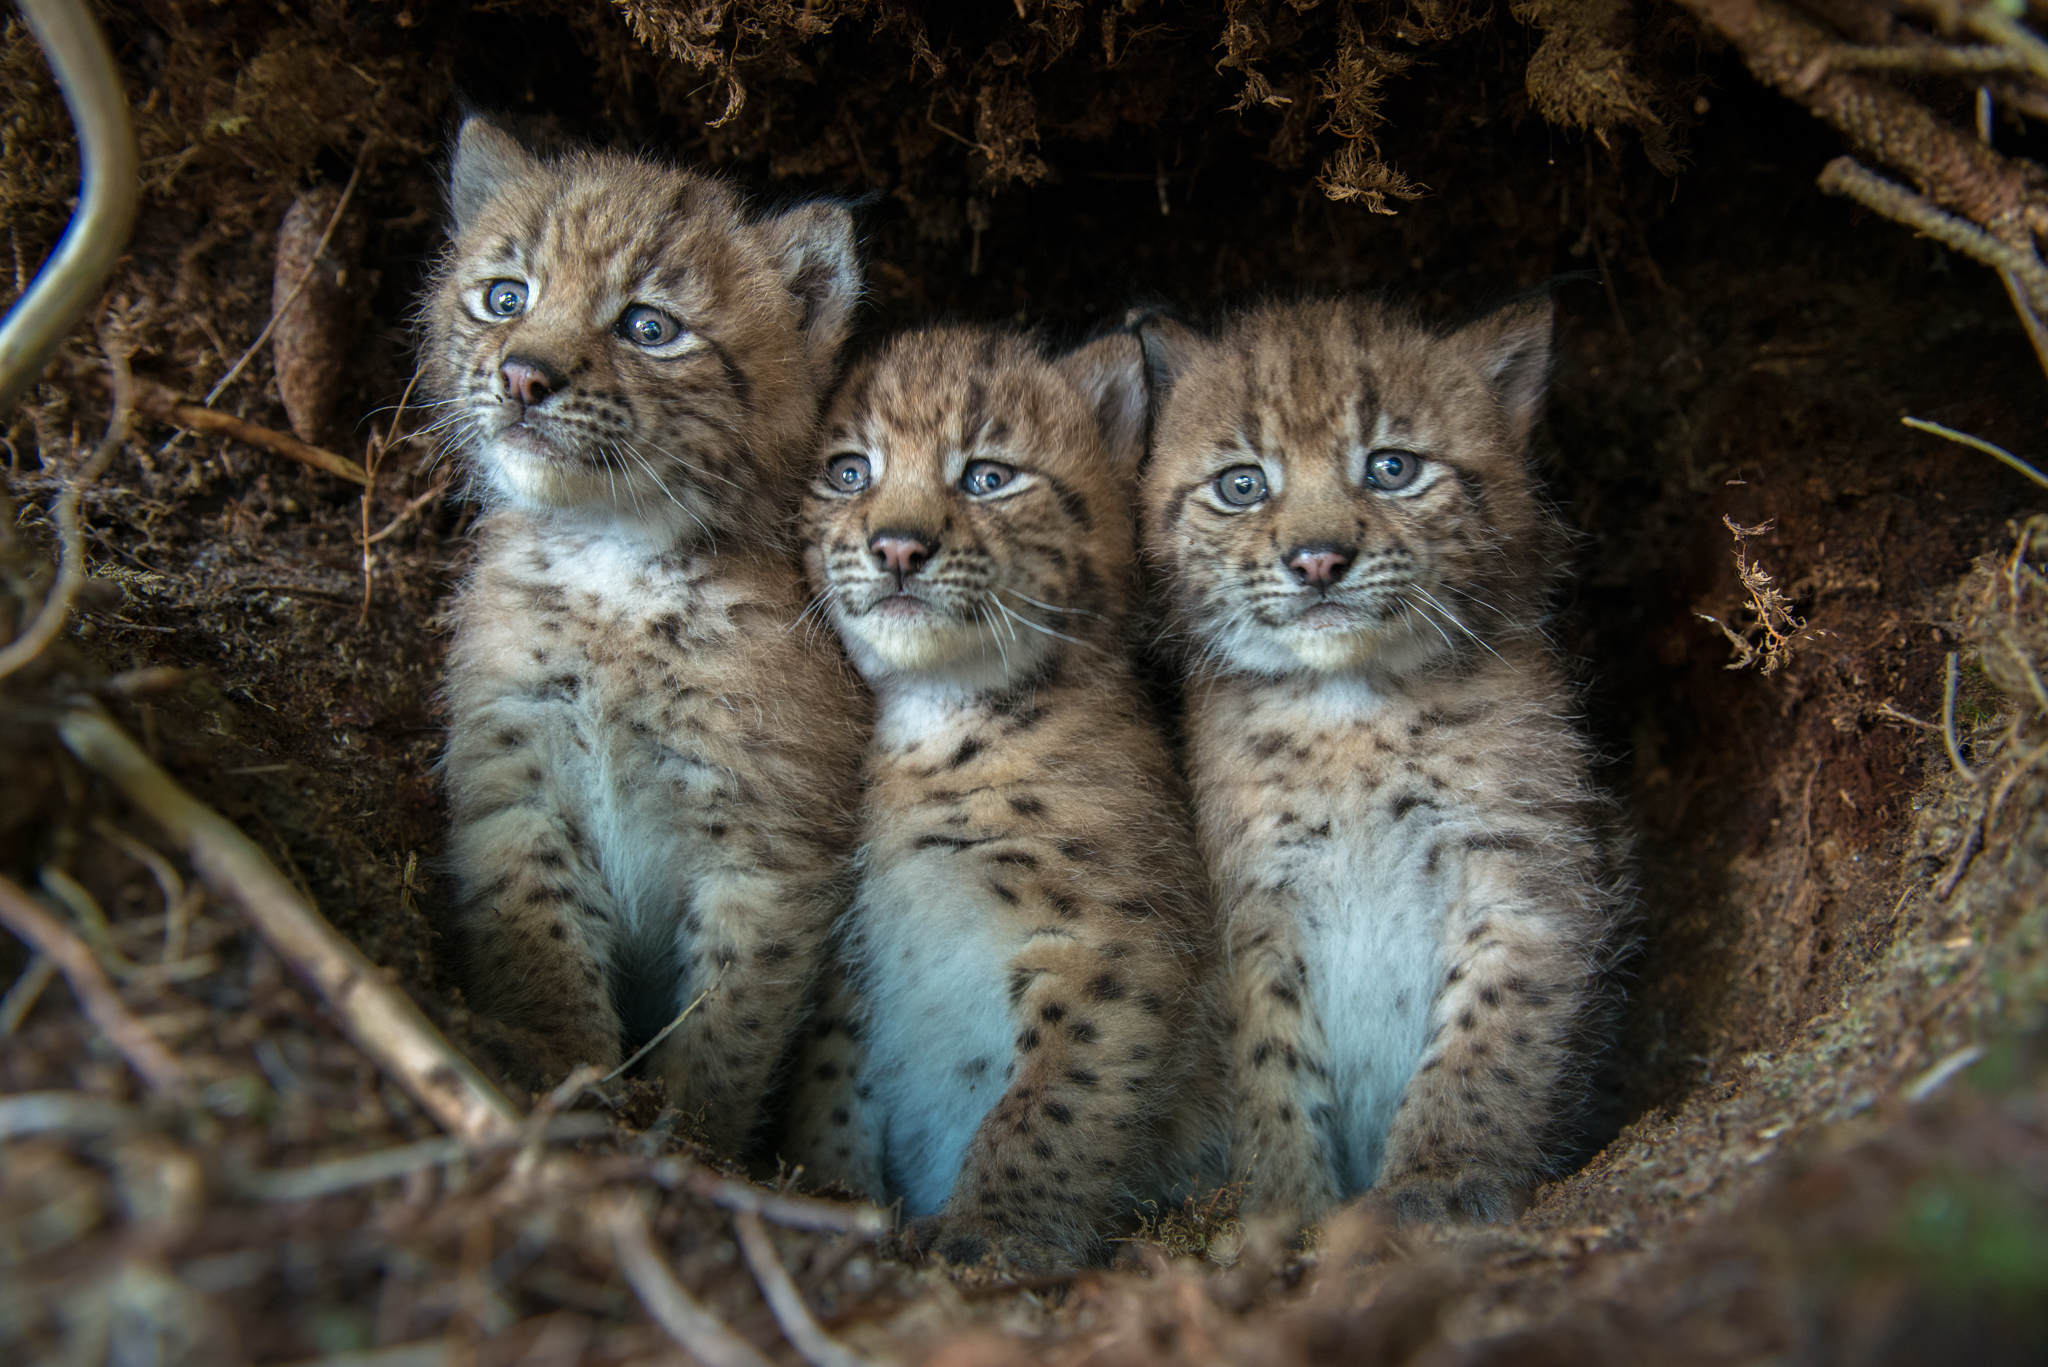 Three bewildered Eurasian lynx (Lynx lynx) cubs peer out from their den after being discovered by KORA conservation biologists.